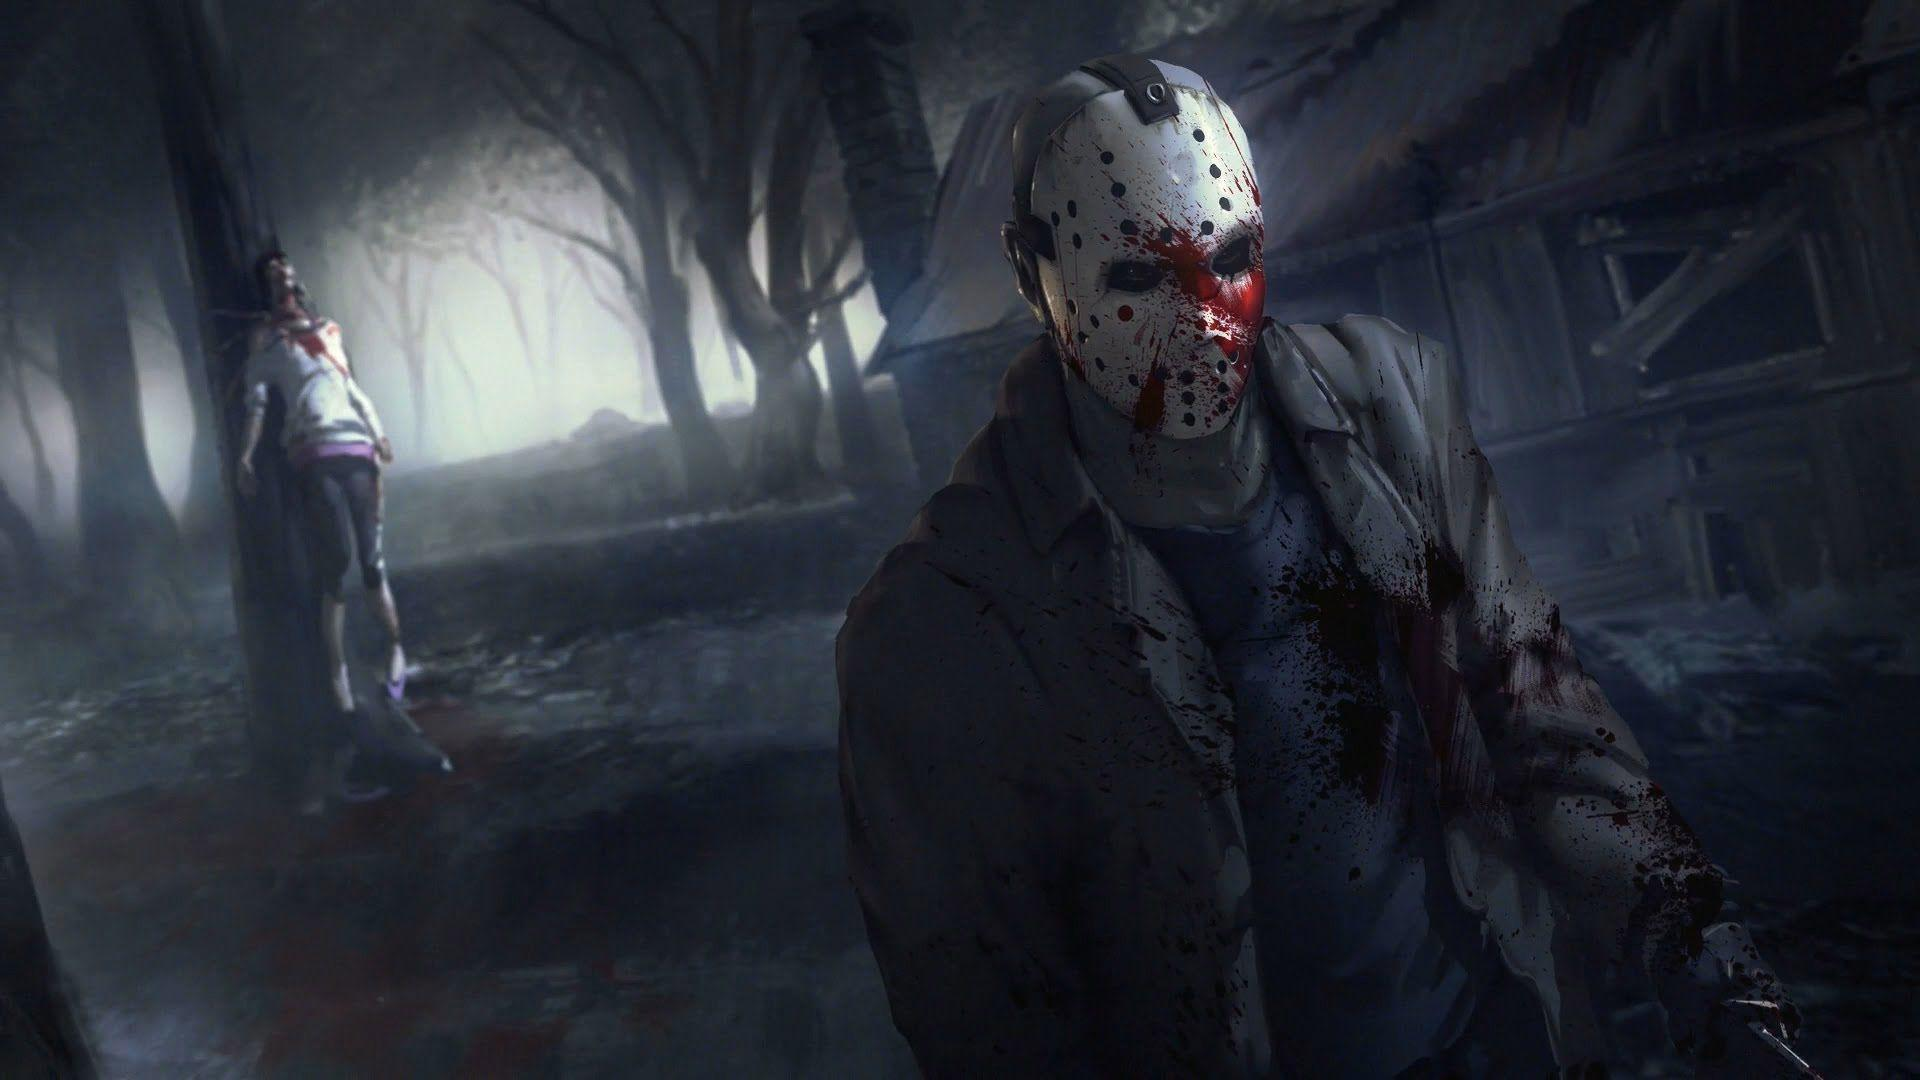 Free Friday the 13th Wallpaper in 1920x1080